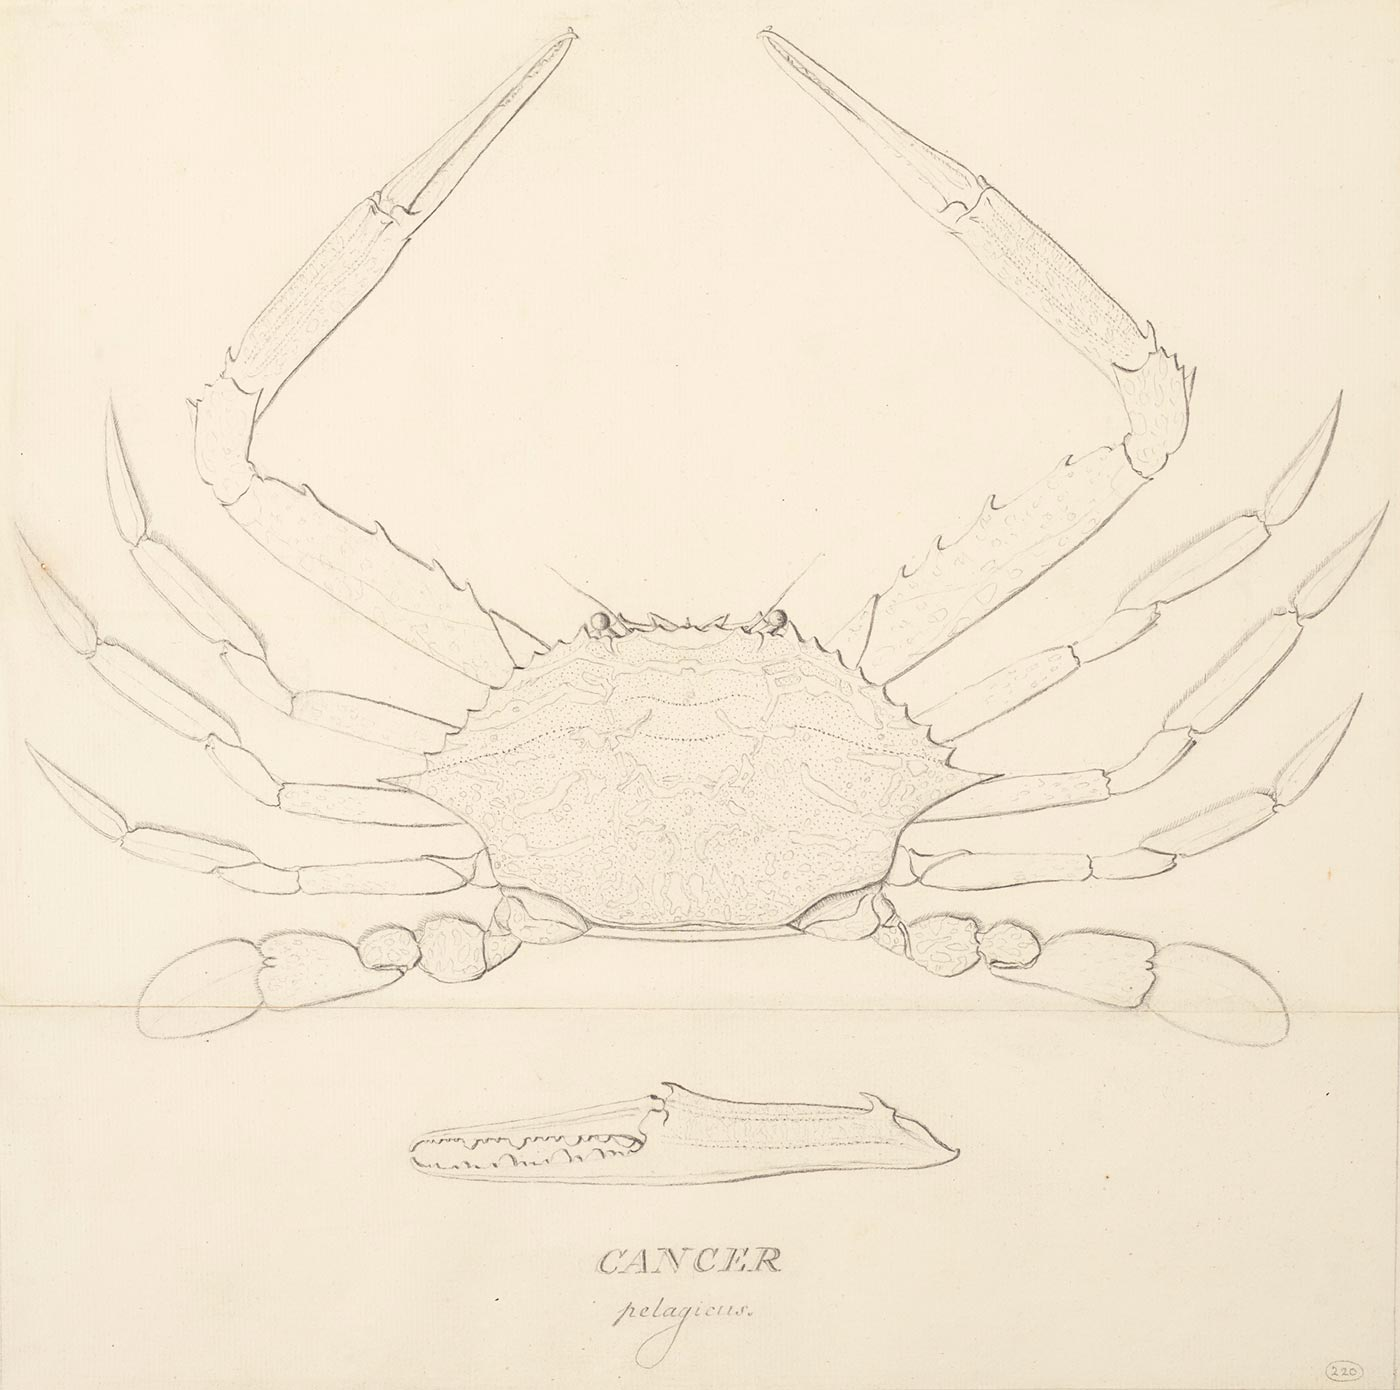 Drawing of a crab with intricate detail particular to its central body. - click to view larger image